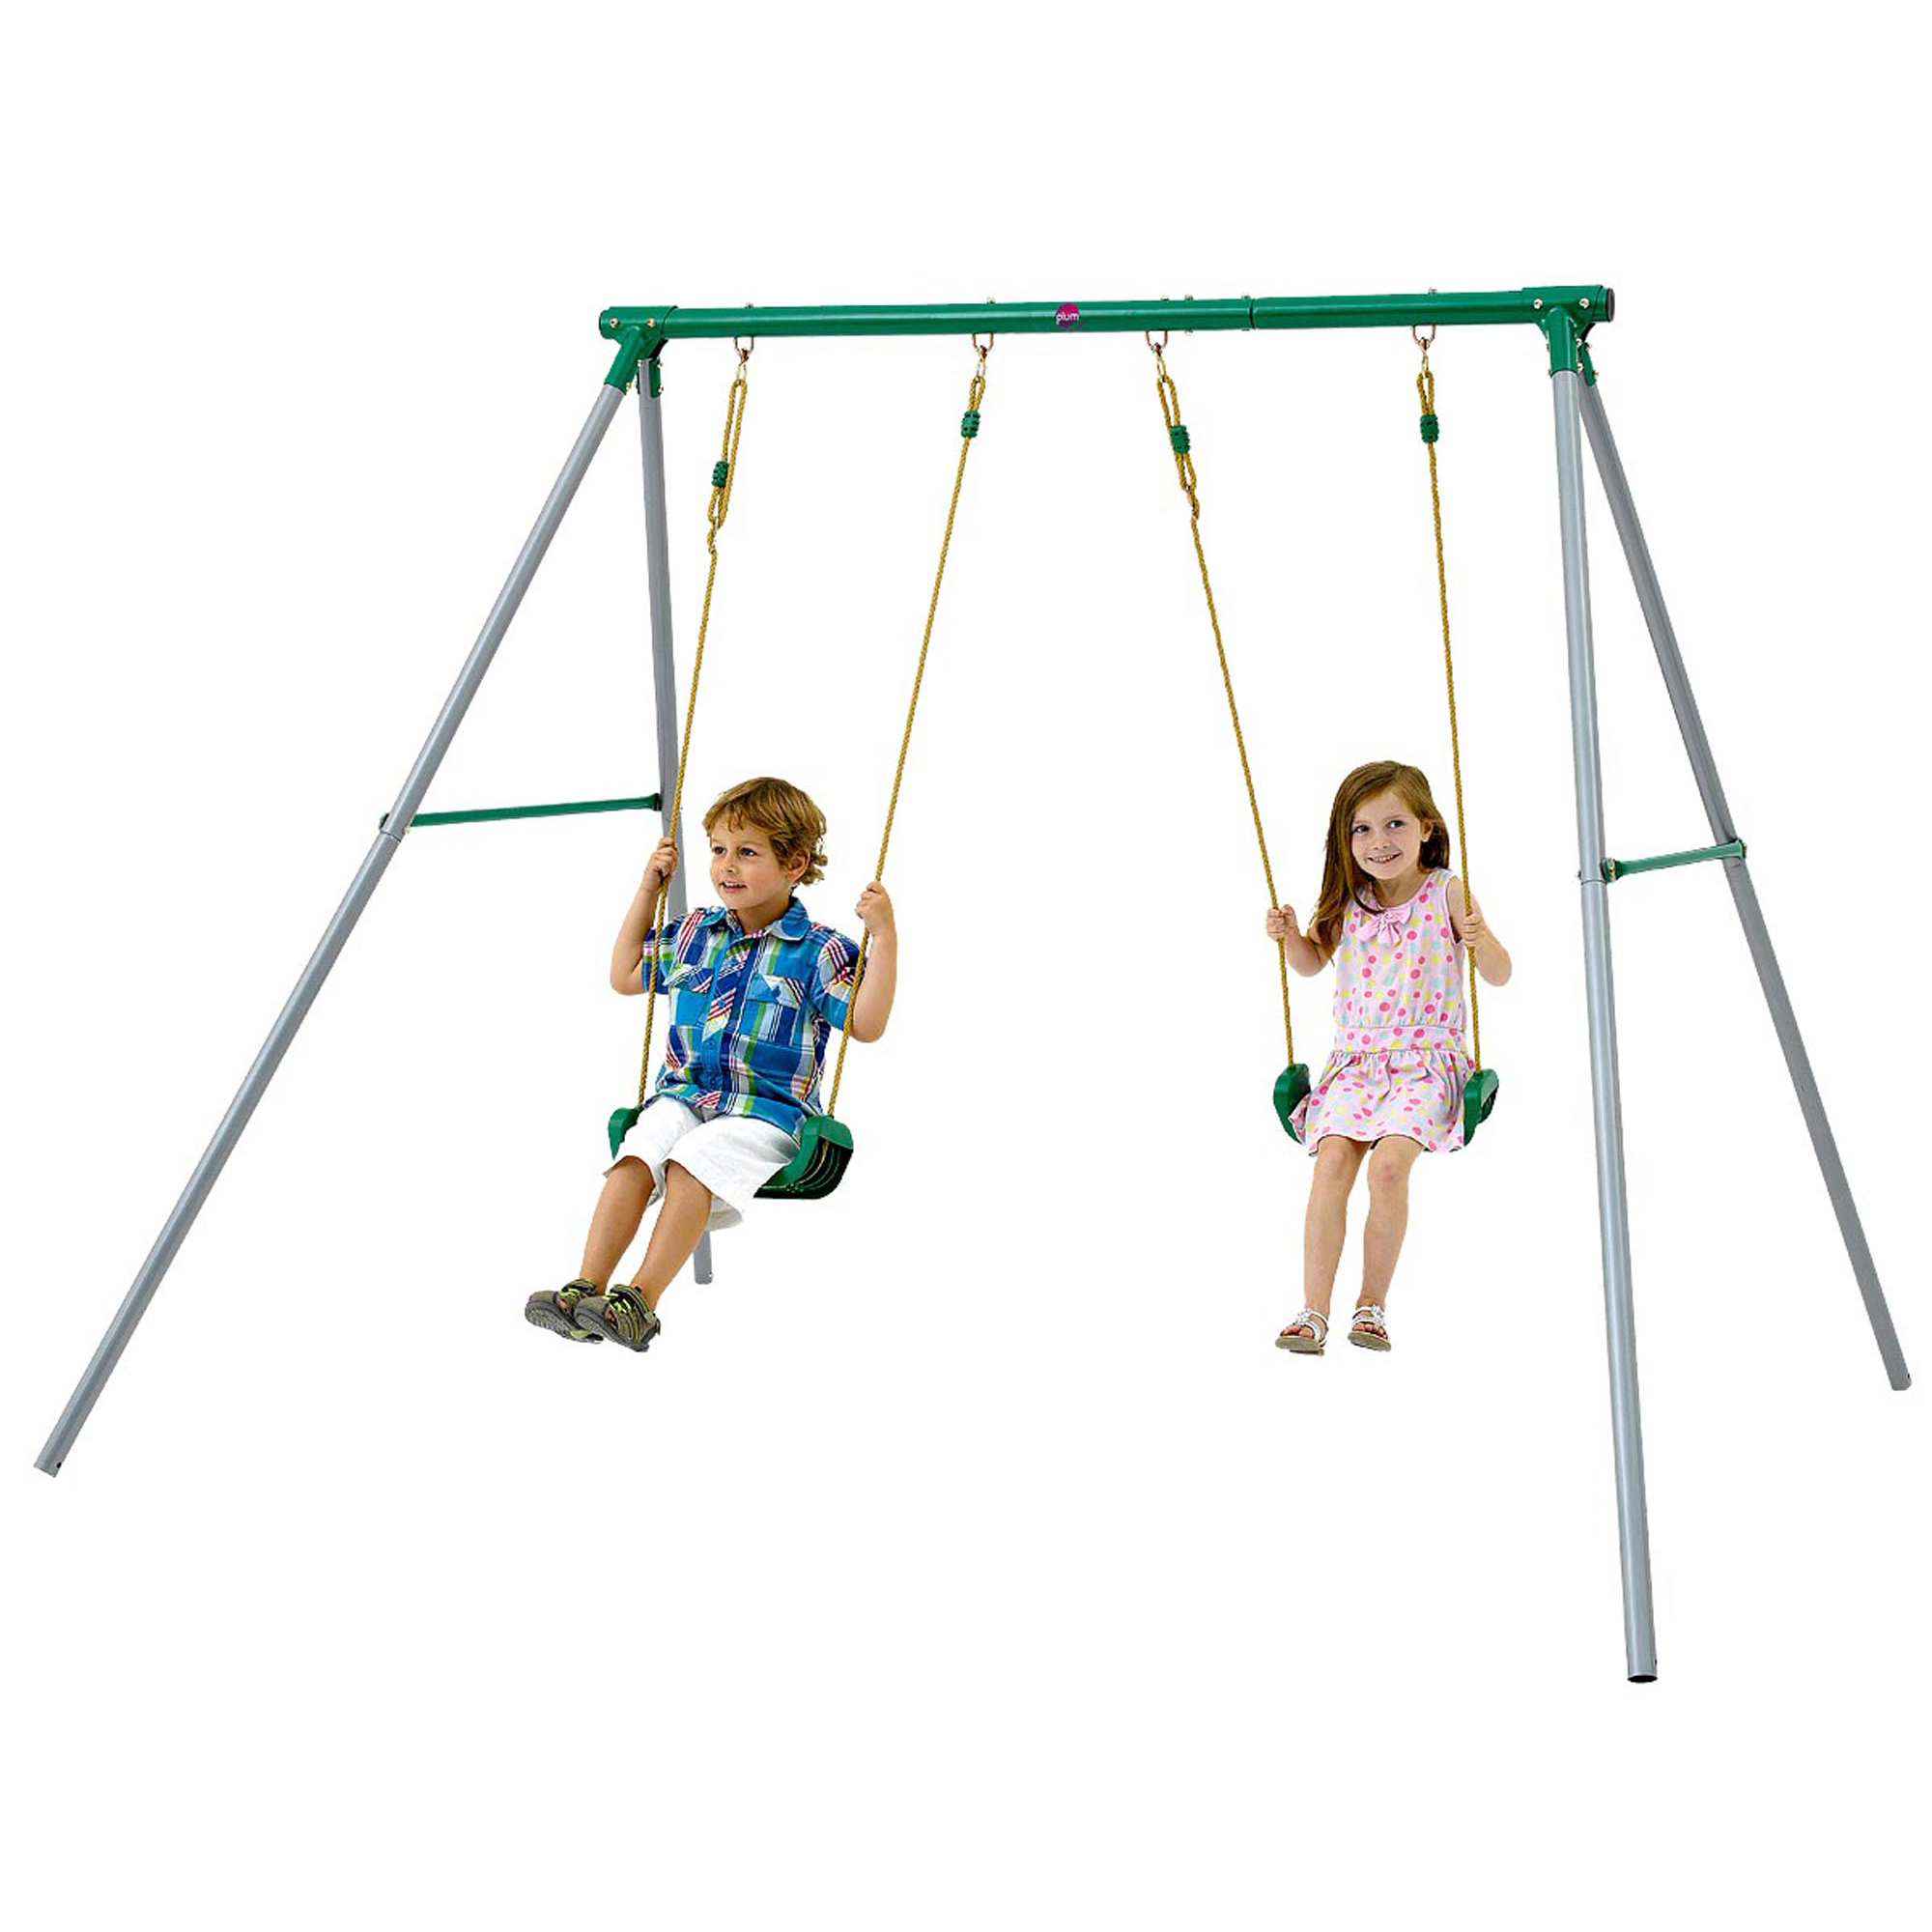 Plum Sedna II Swing Set